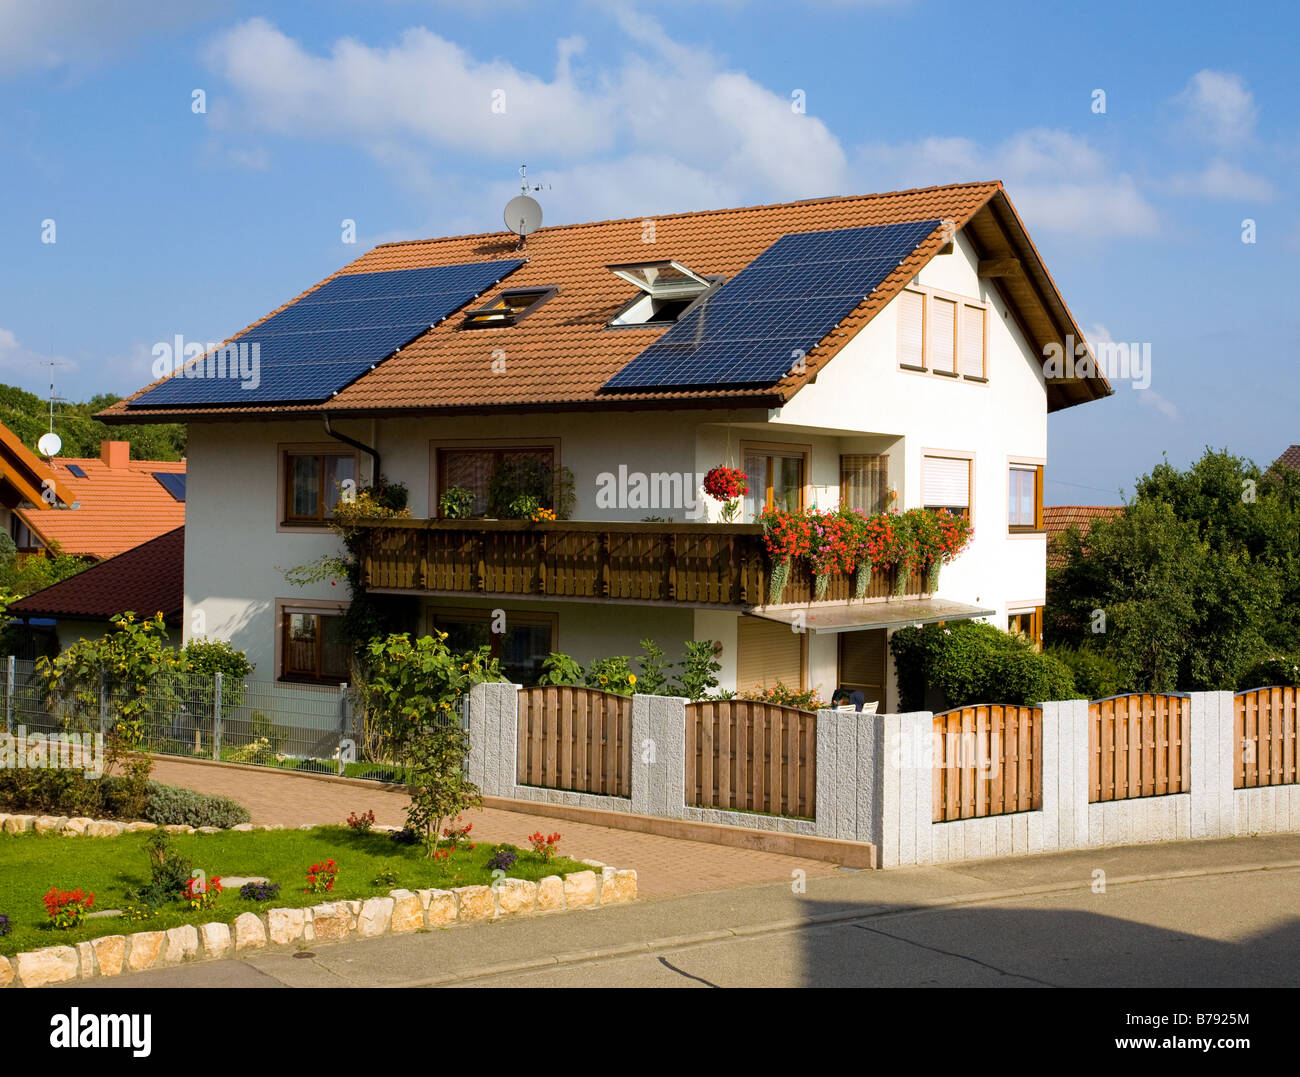 House with solar cells - Stock Image